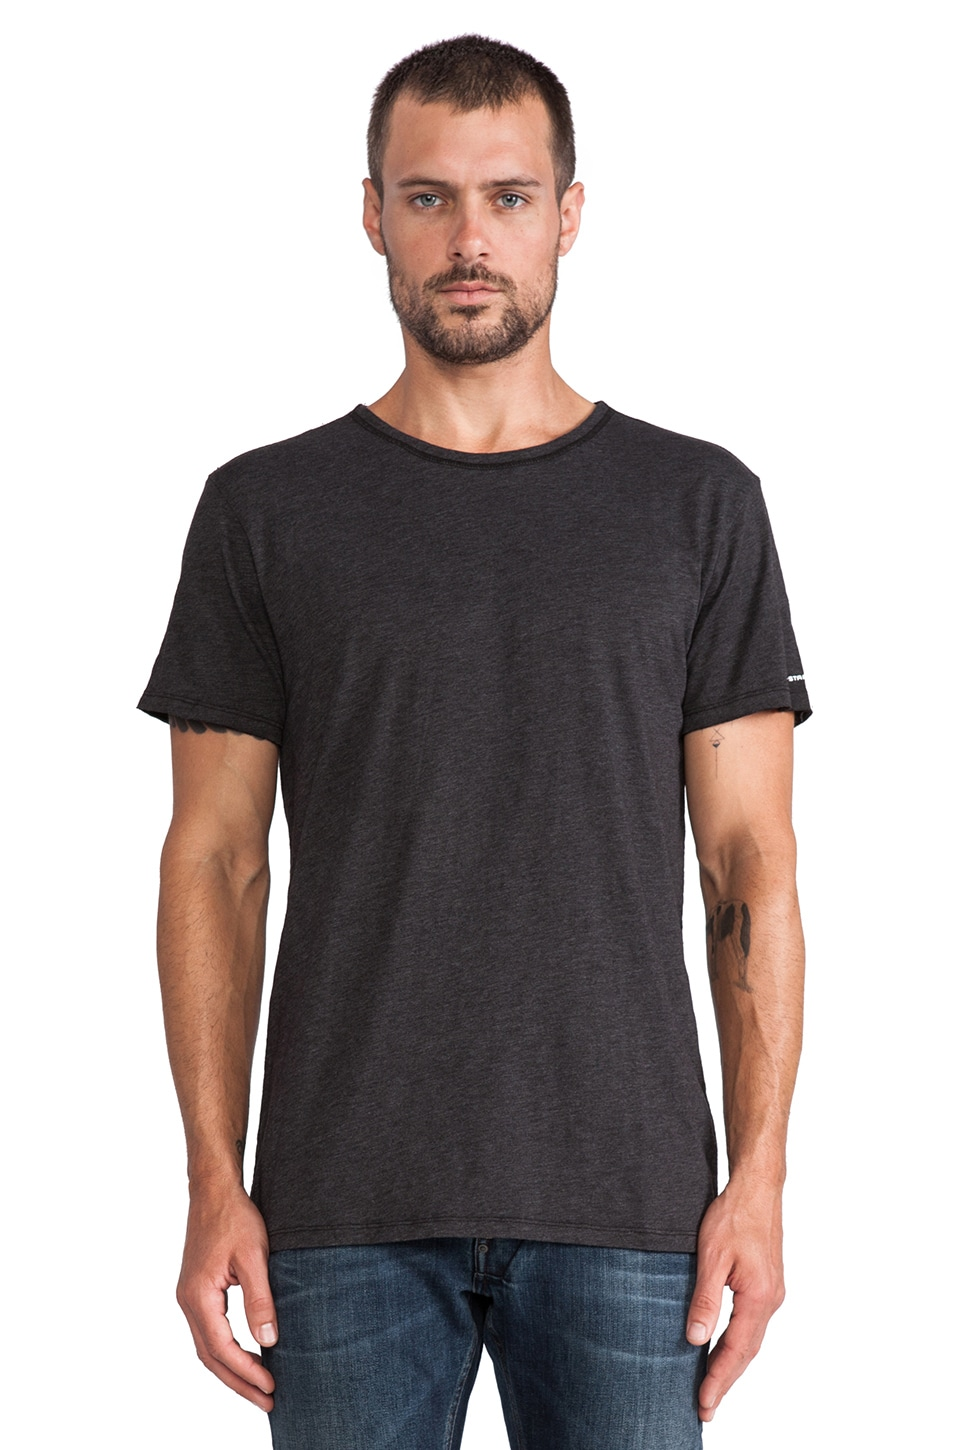 G-Star Relaxed Tee in Black